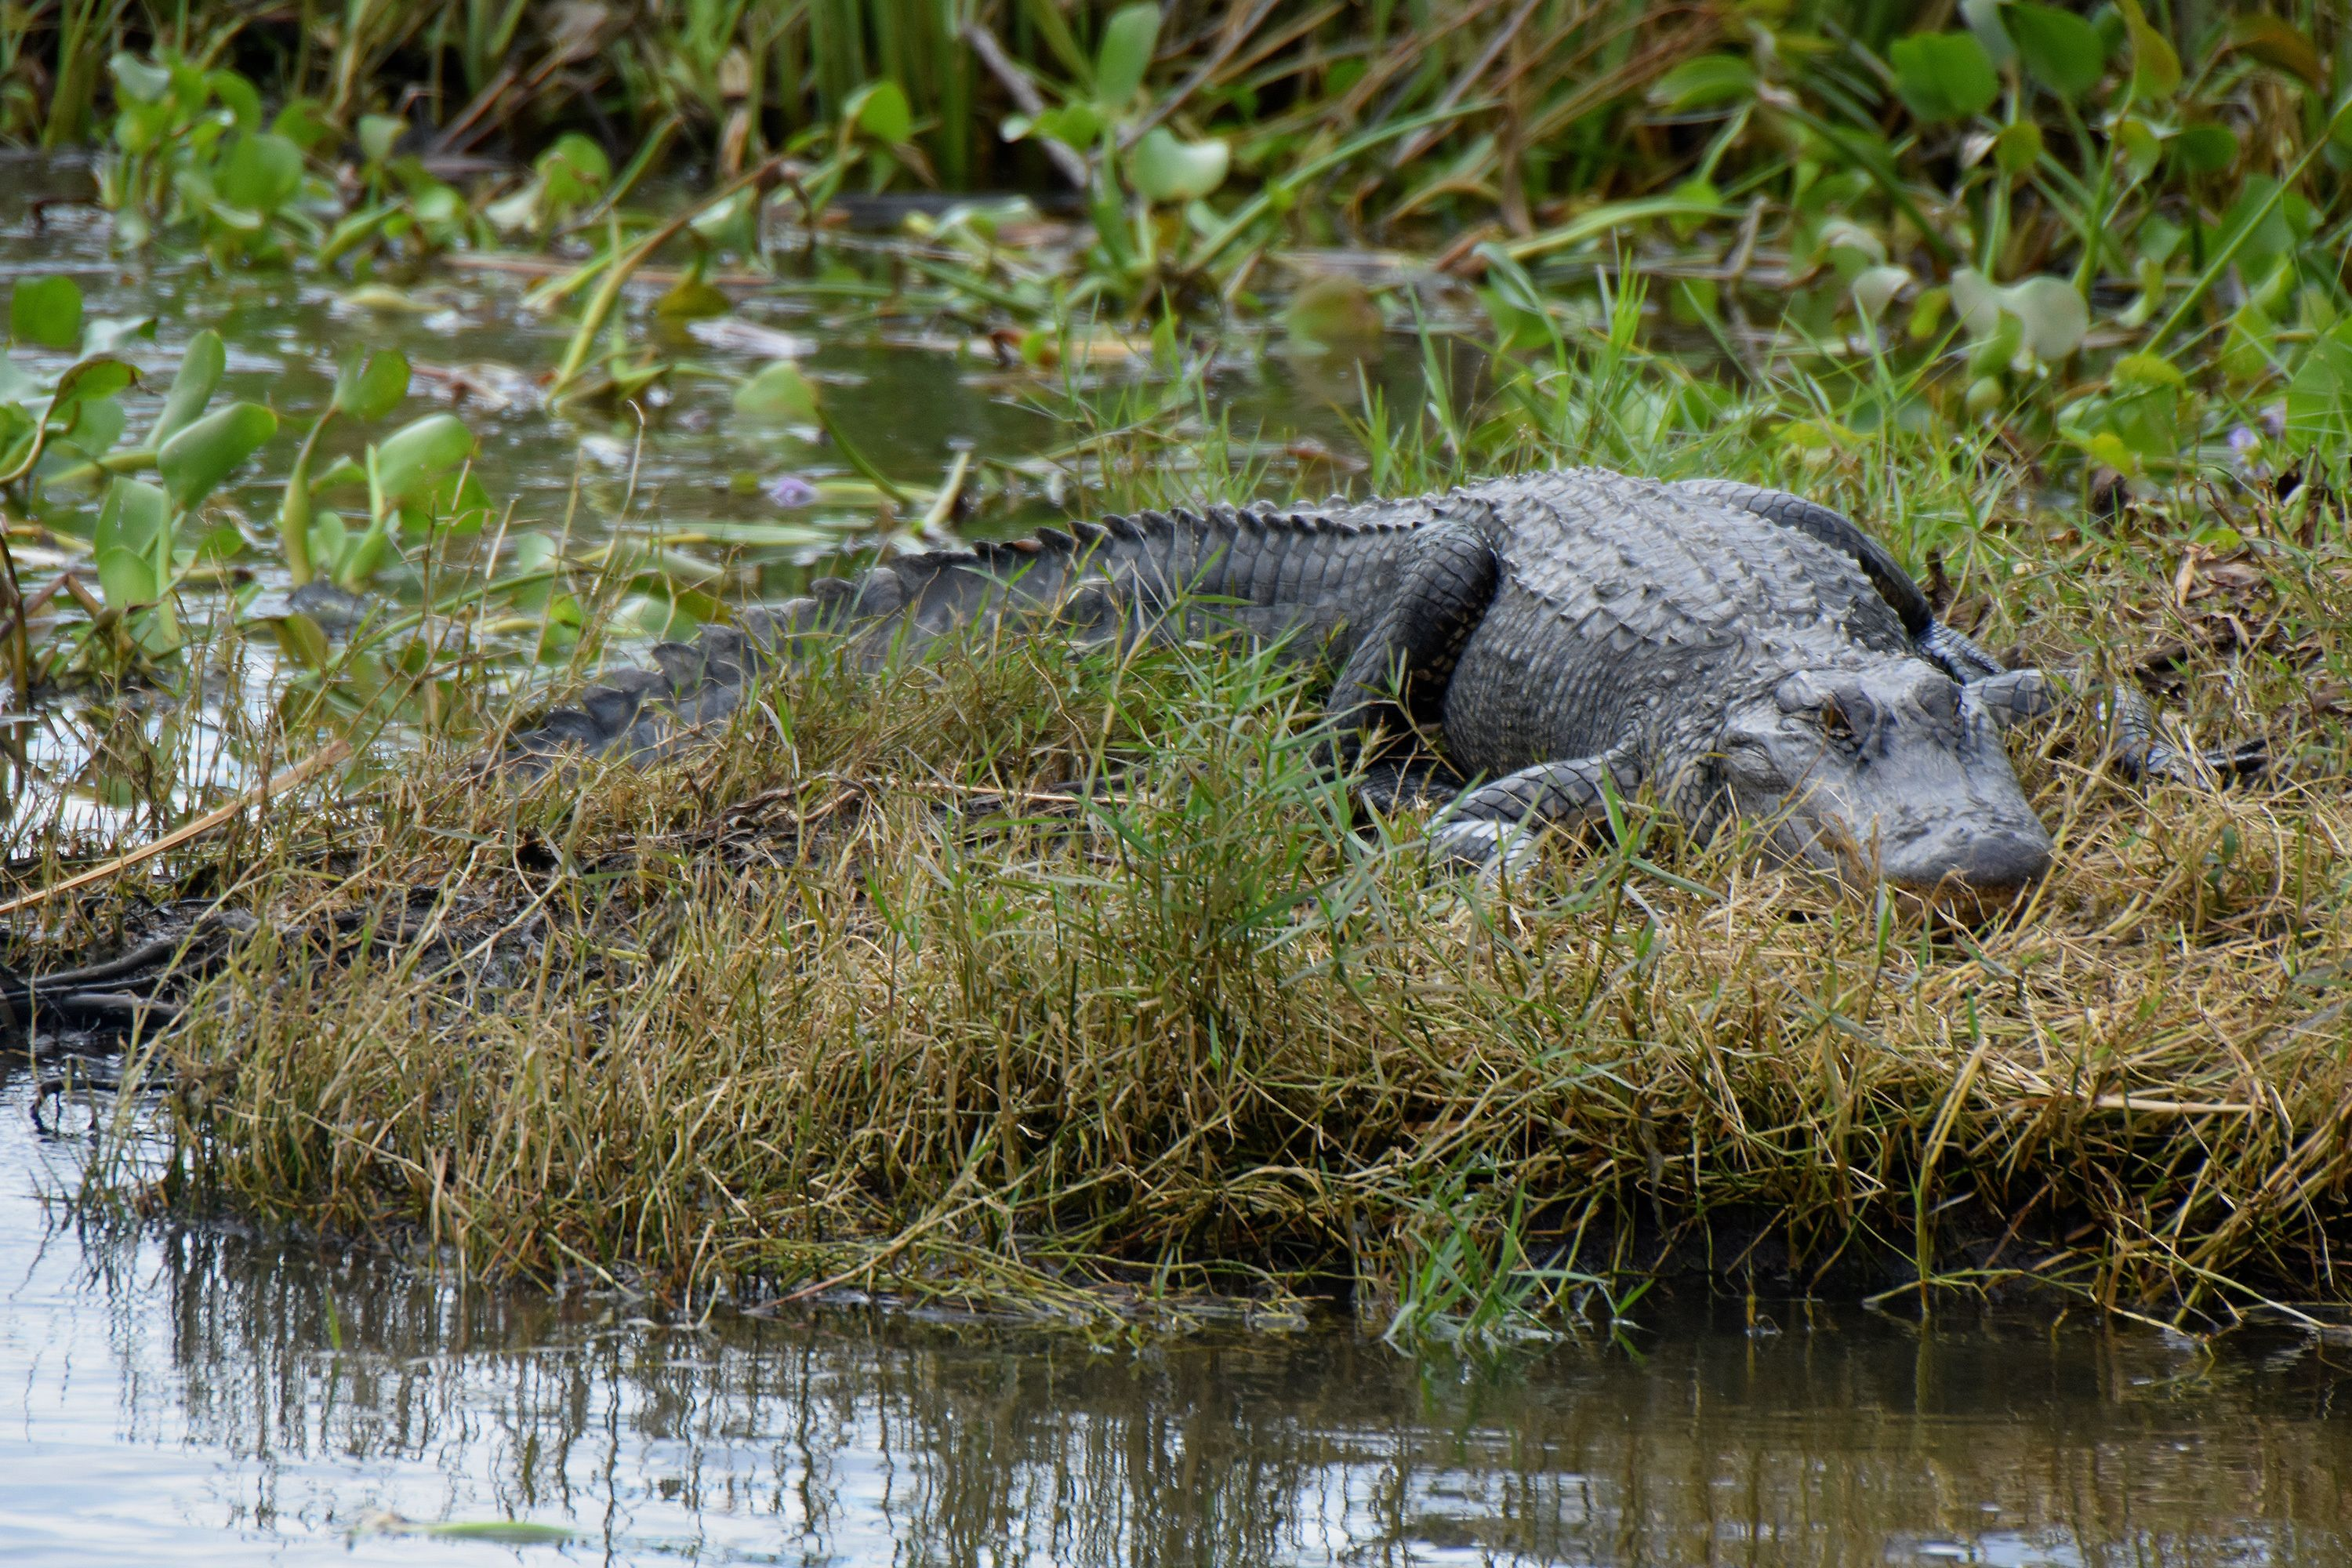 Alligator seen in a swamp in New Orleans